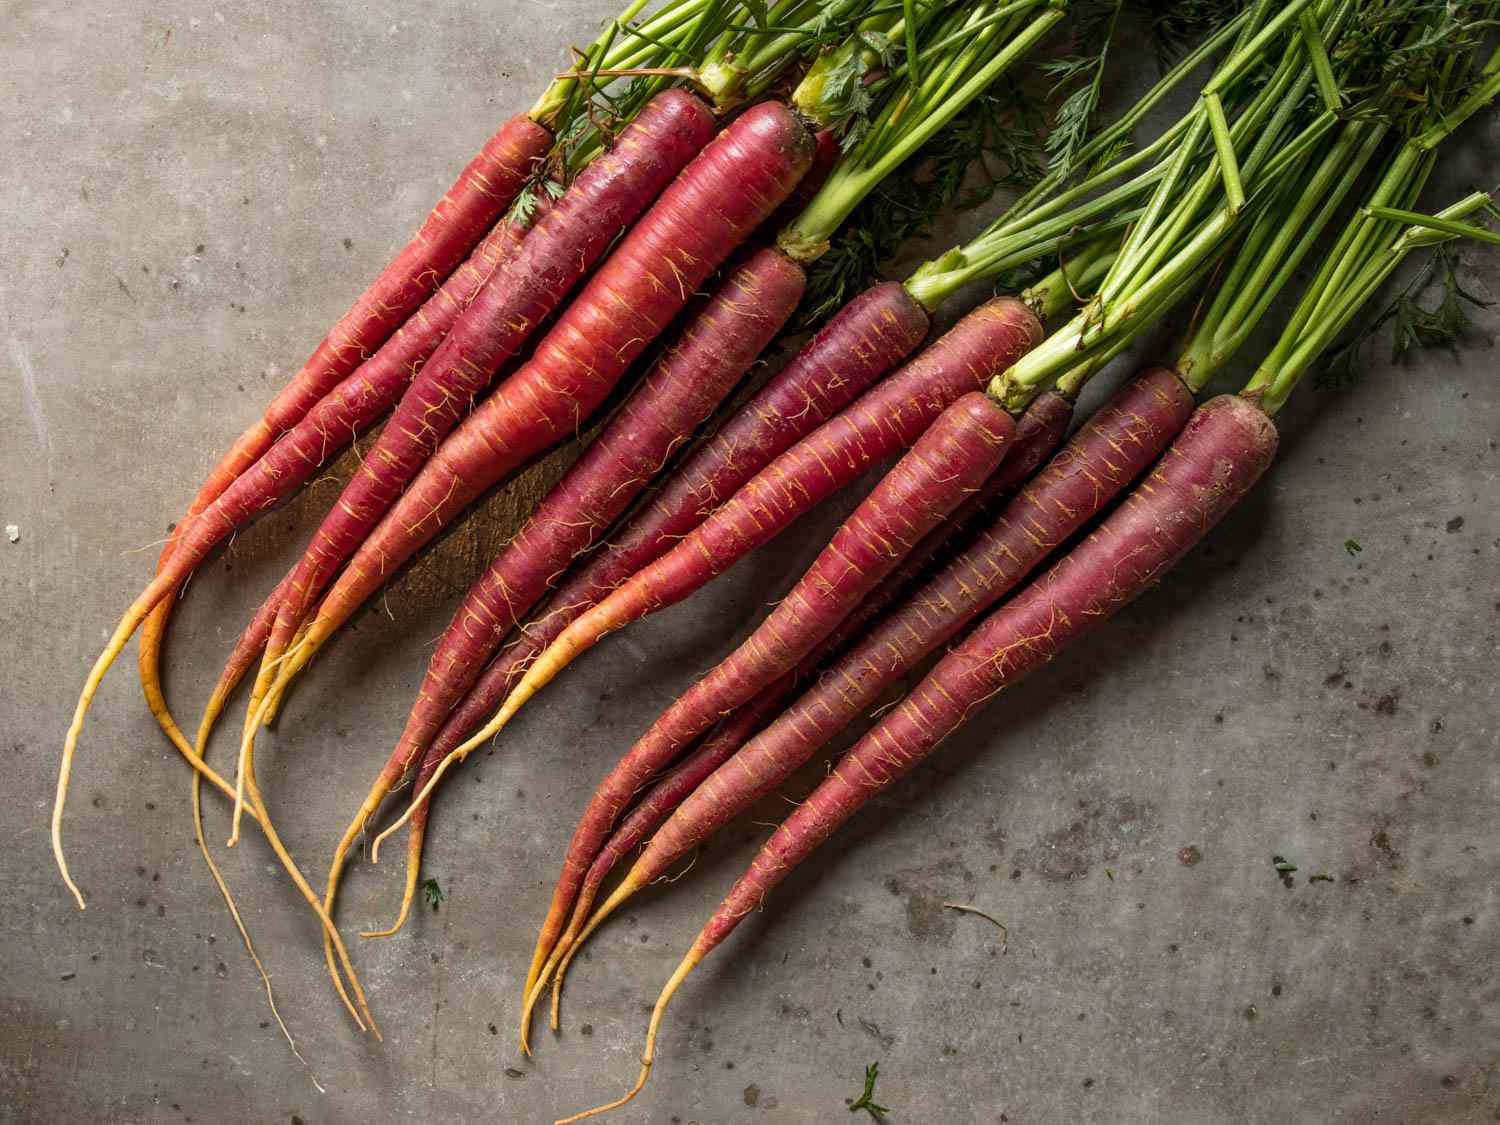 A bunch of red and purple carrots